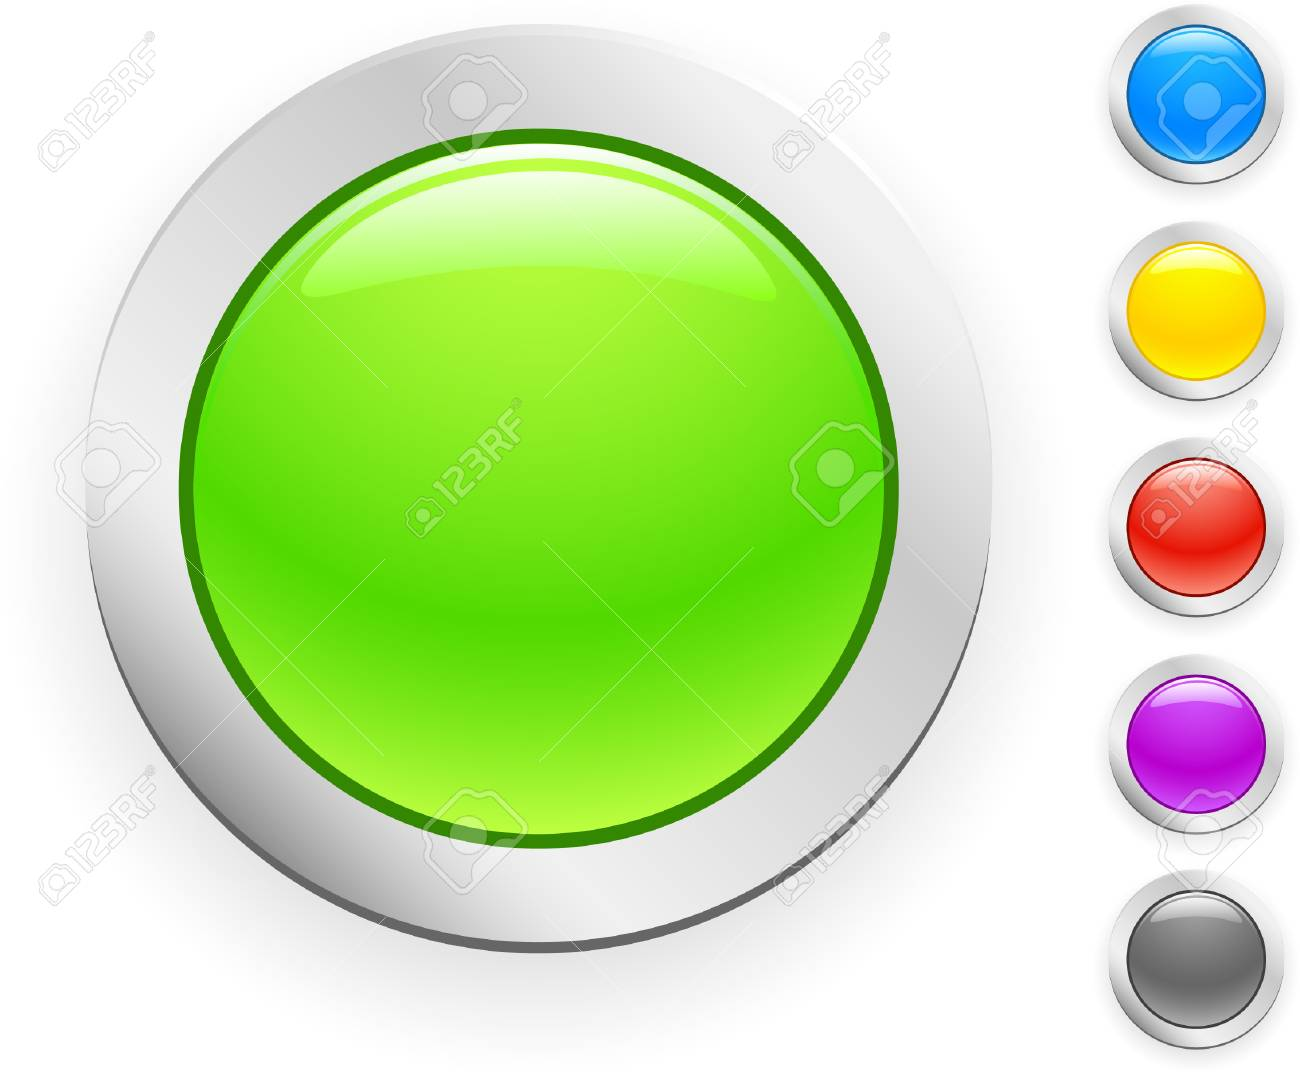 6 high-detailed buttons. Vector illustration. Stock Vector - 2151086